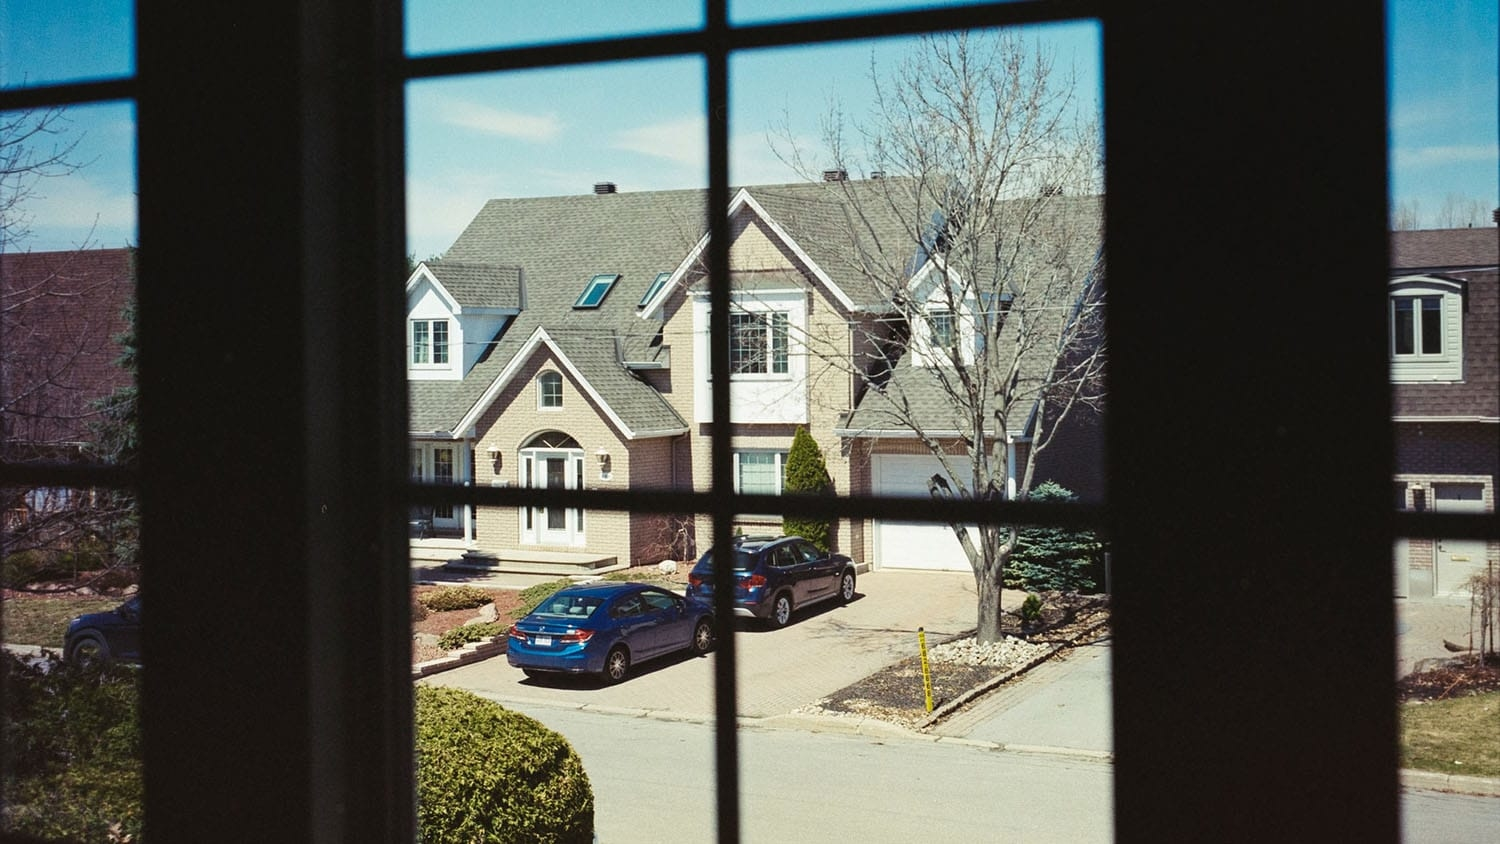 view of a suburban street from the window of one of the homes